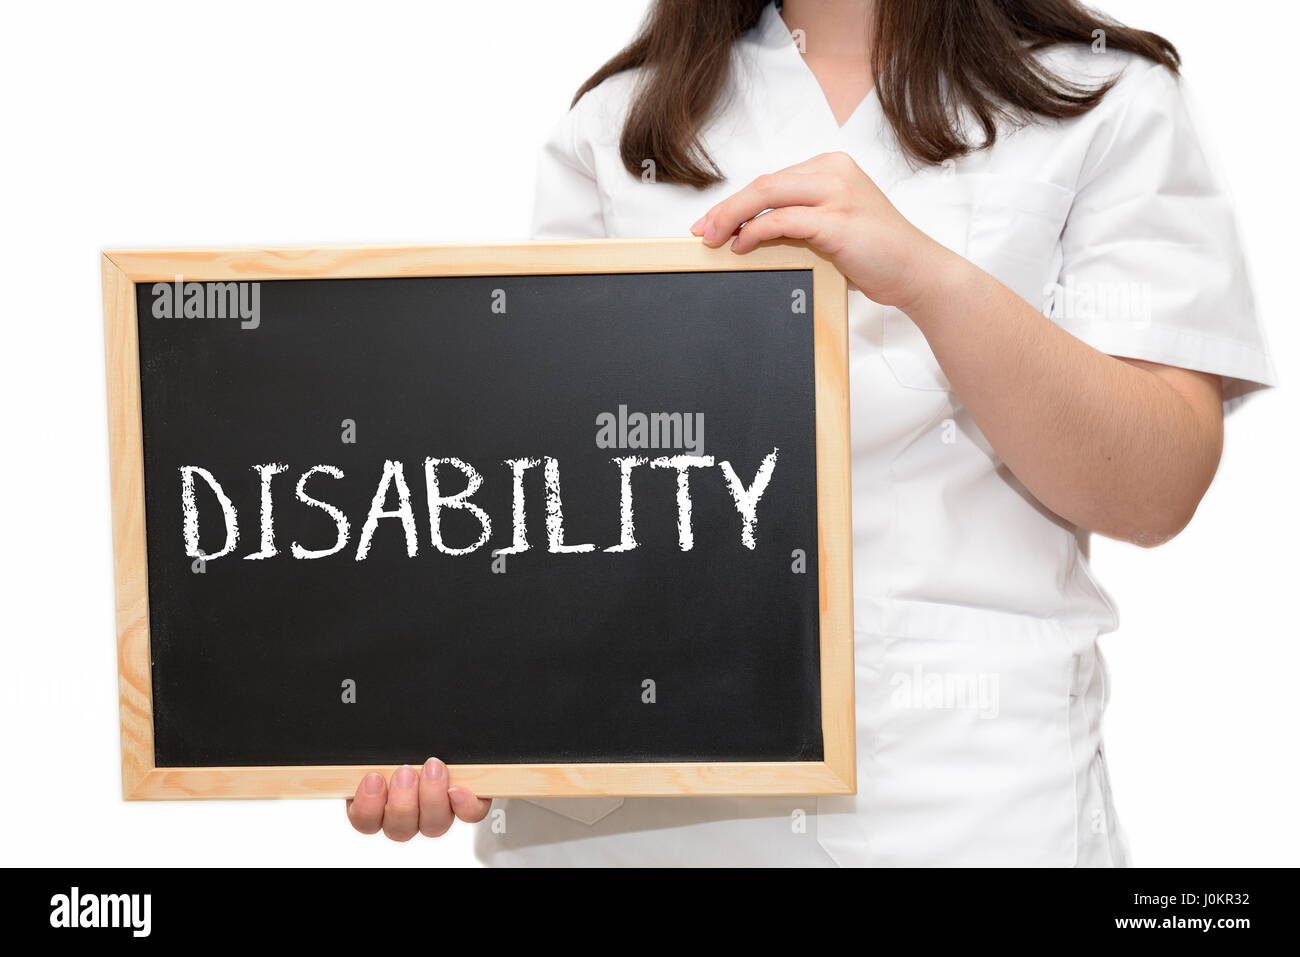 Female nurse holding a slate board with the text Disability written with chalk, isolated on white background. - Stock Image